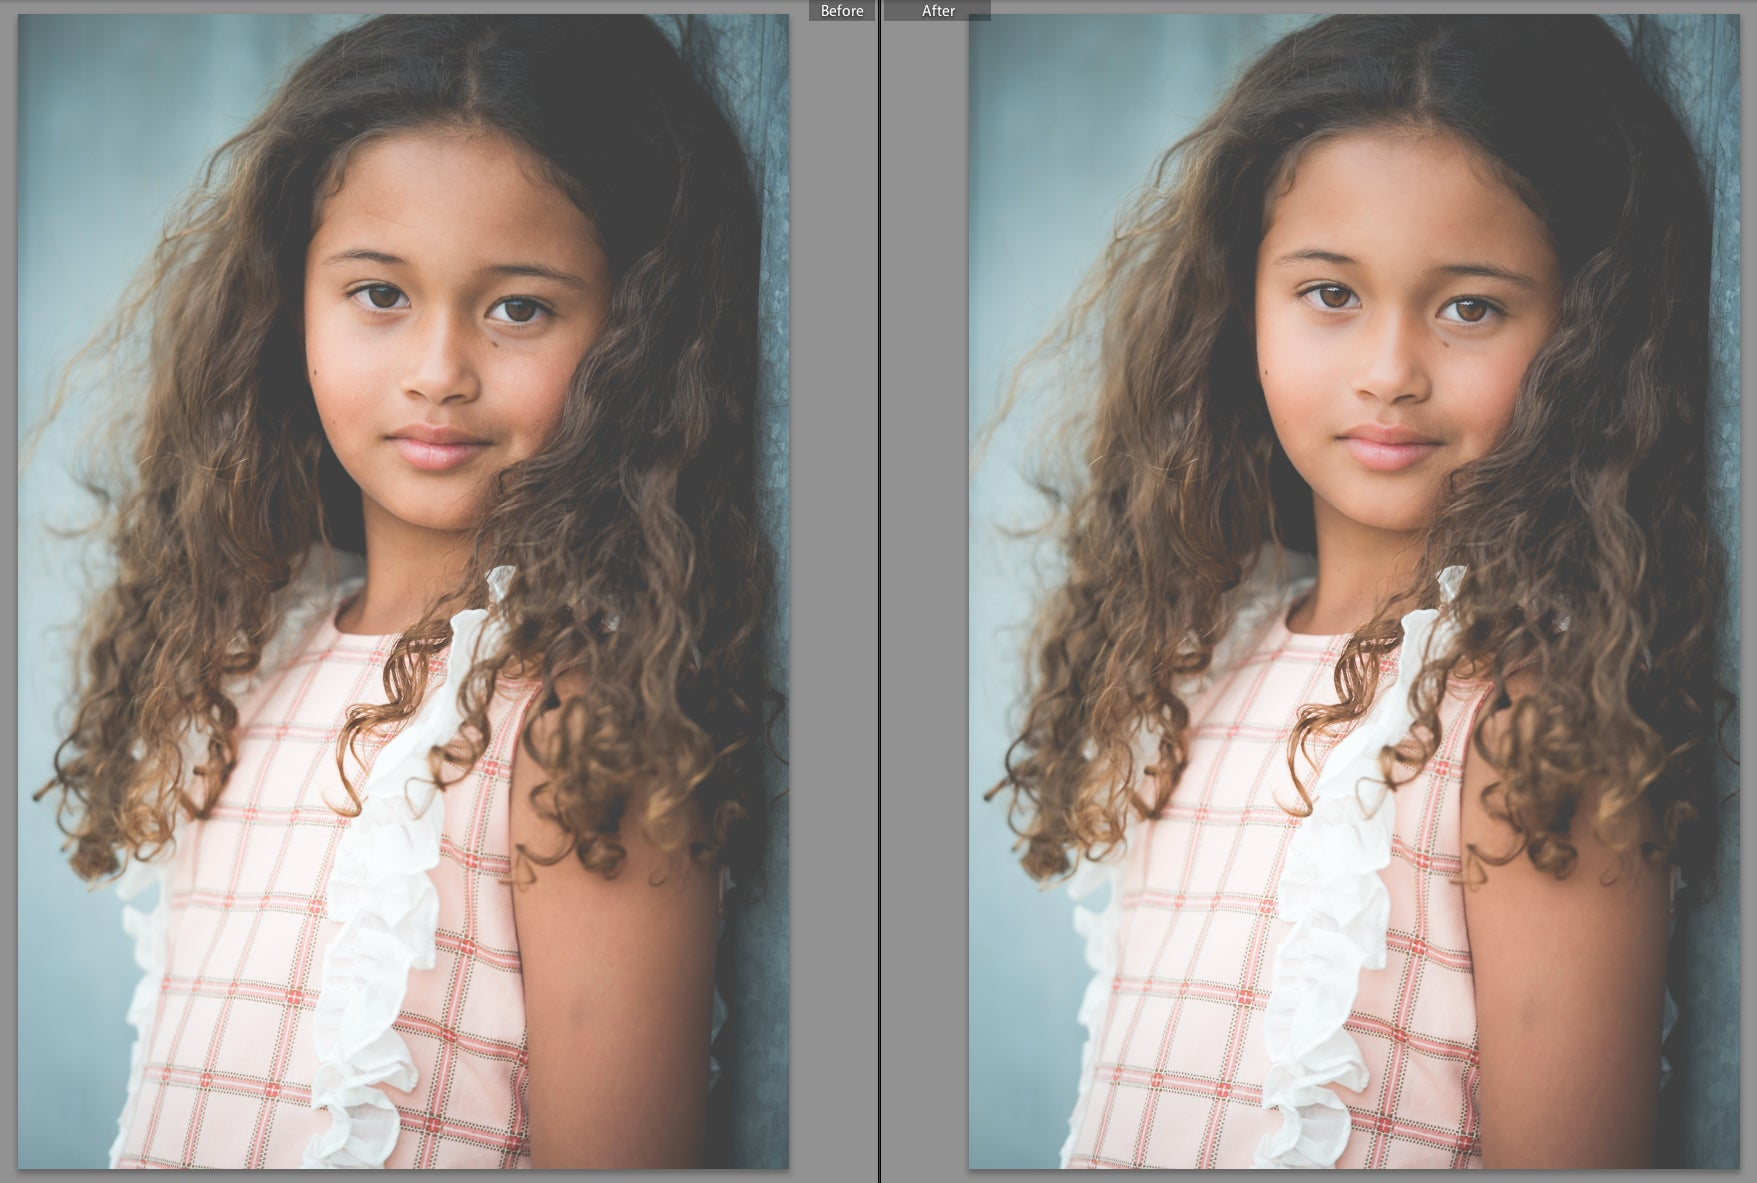 Mastering Lightroom in 7 Days: Developing your Photos with Presets